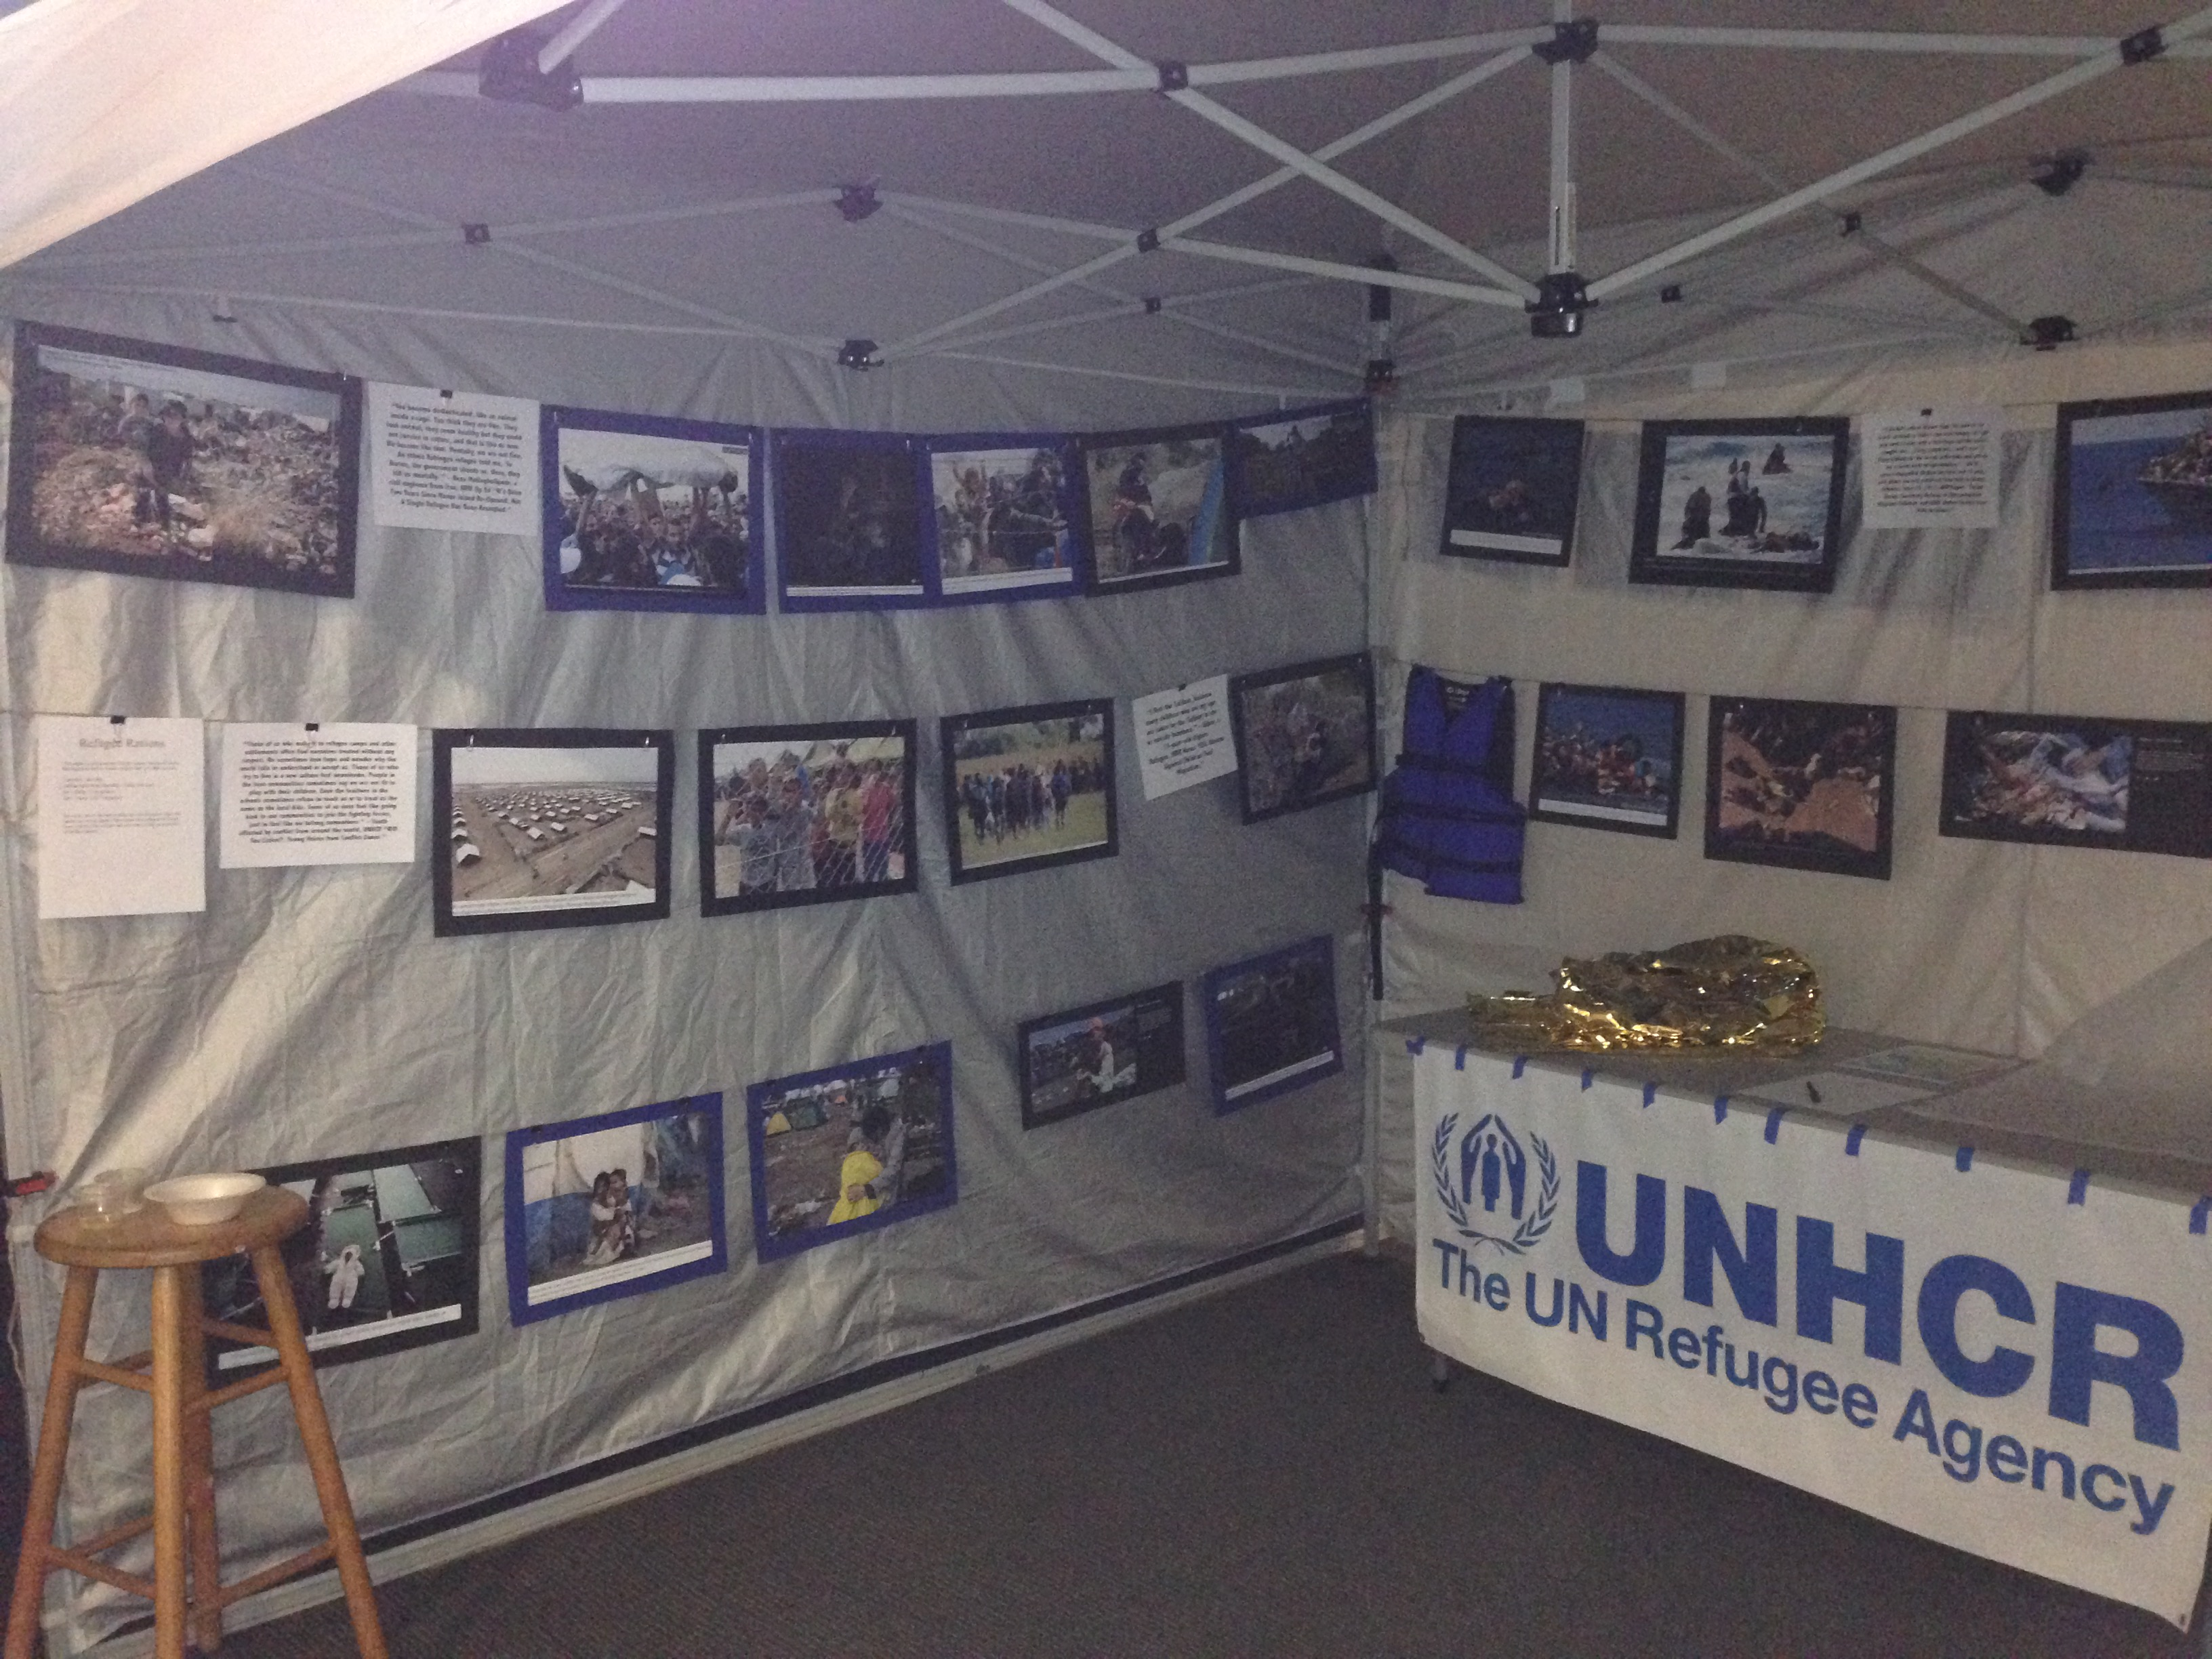 Wildwood School displayed the refugee tent exhibit for three days.<br>Photo by Kristin Ghazarians.